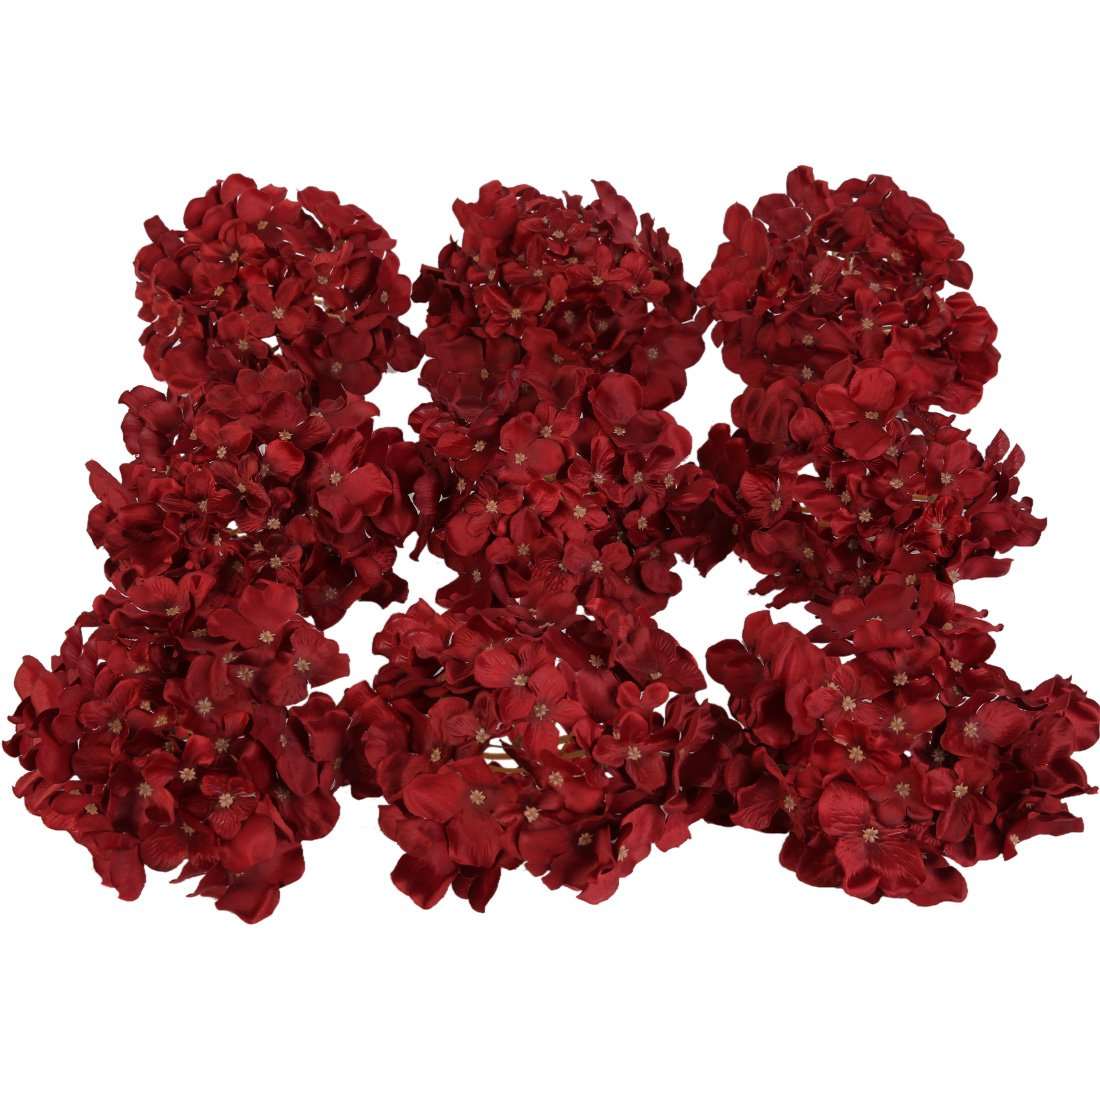 Luyue Silk Hydrangea Heads Artificial Decoration Flowers Garden Floral Decor,Pack of 10 (Wine Red)